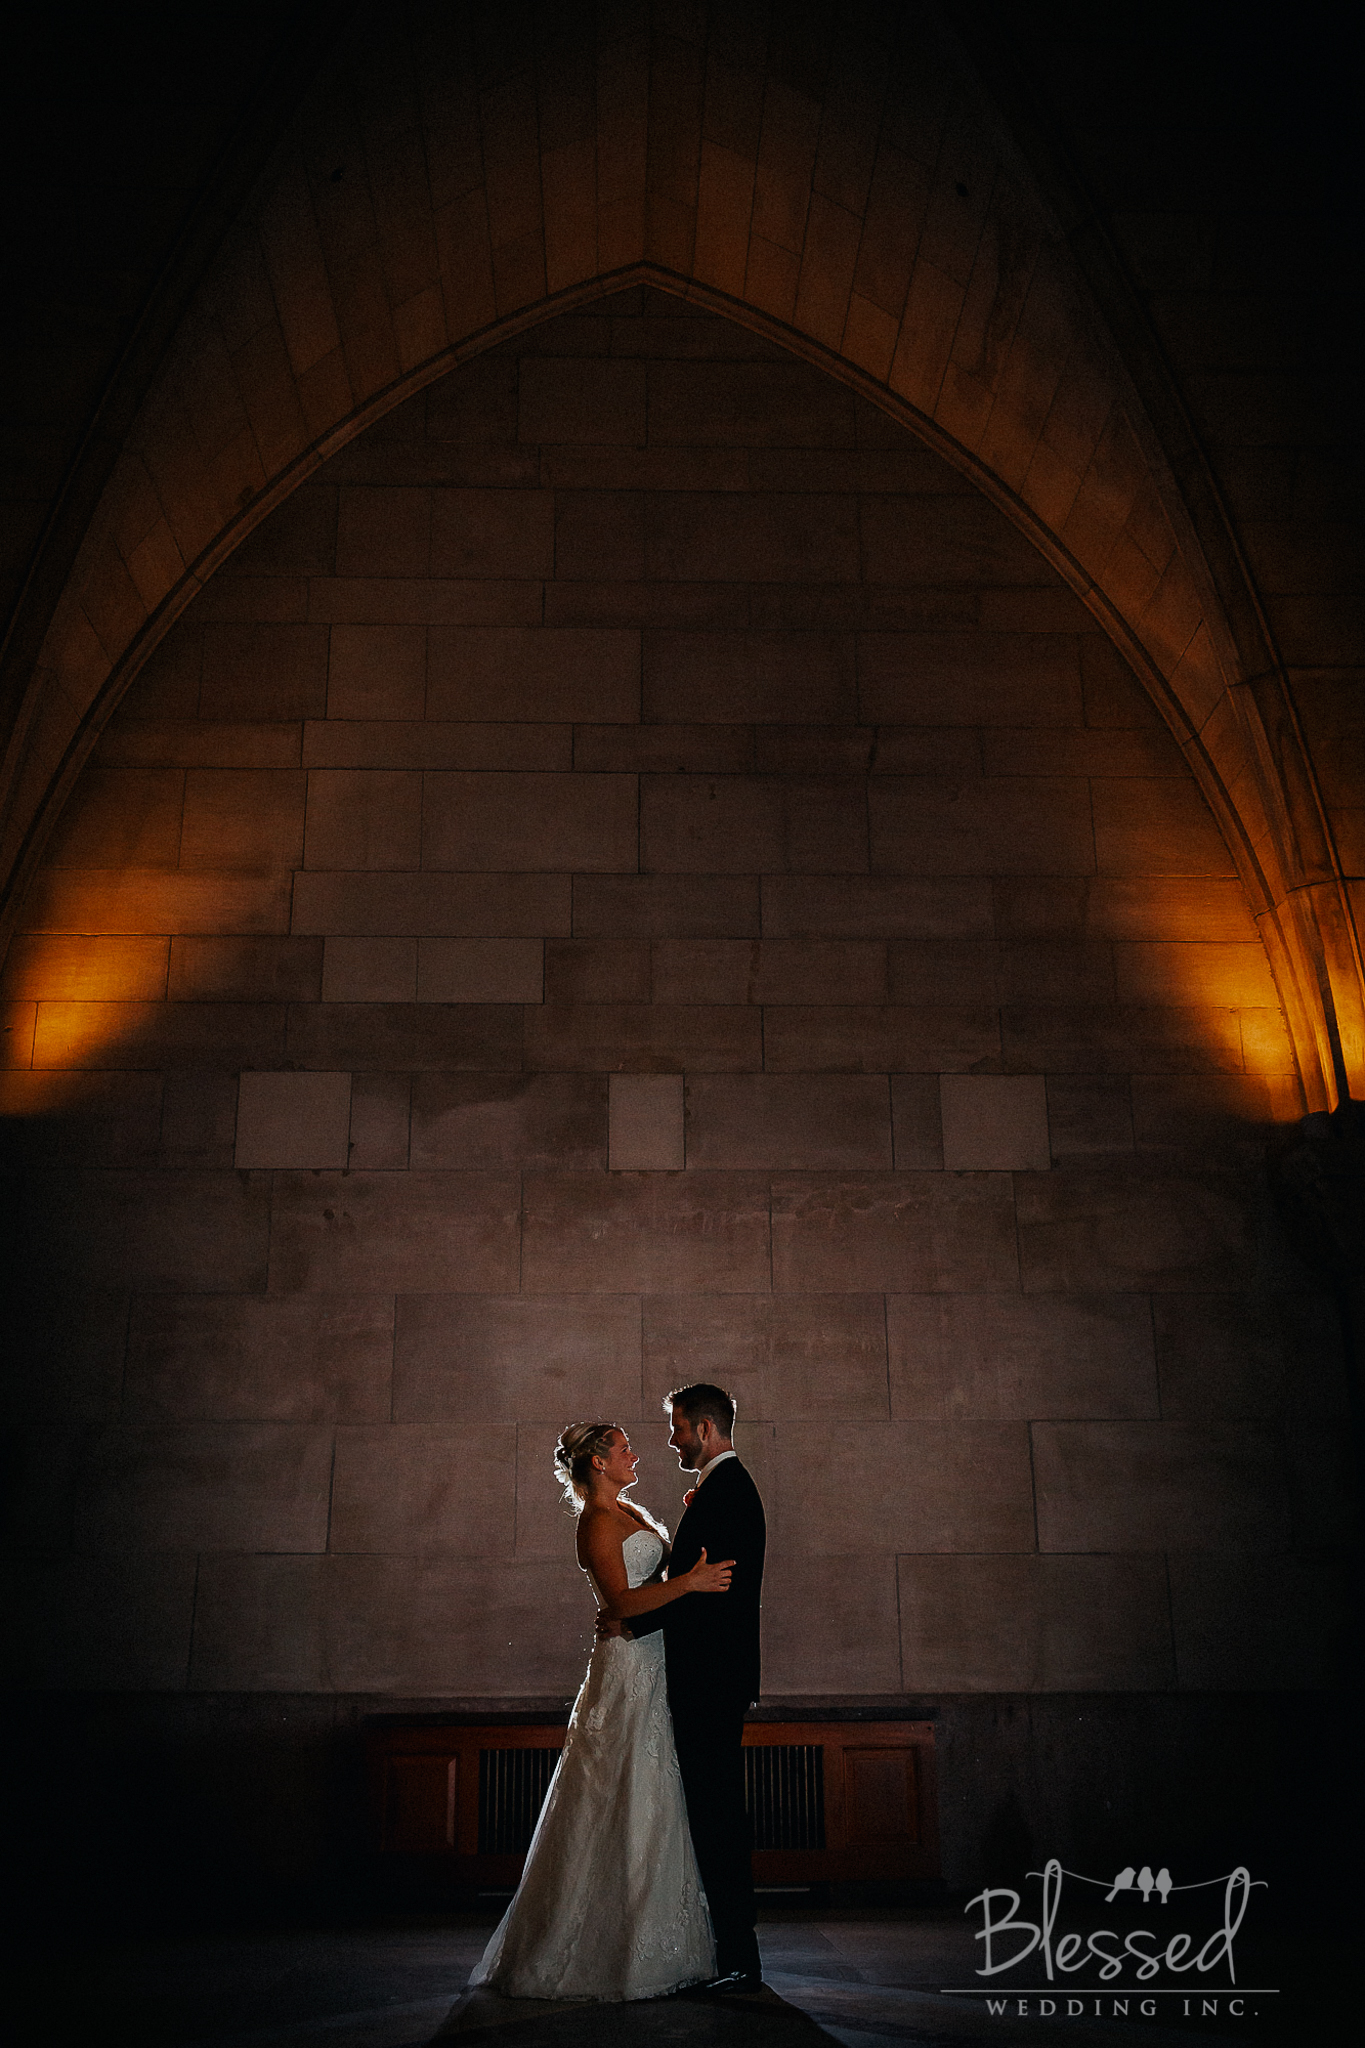 Destination Wedding Photography Minnesota By Blessed Wedding Photographers-92.jpg